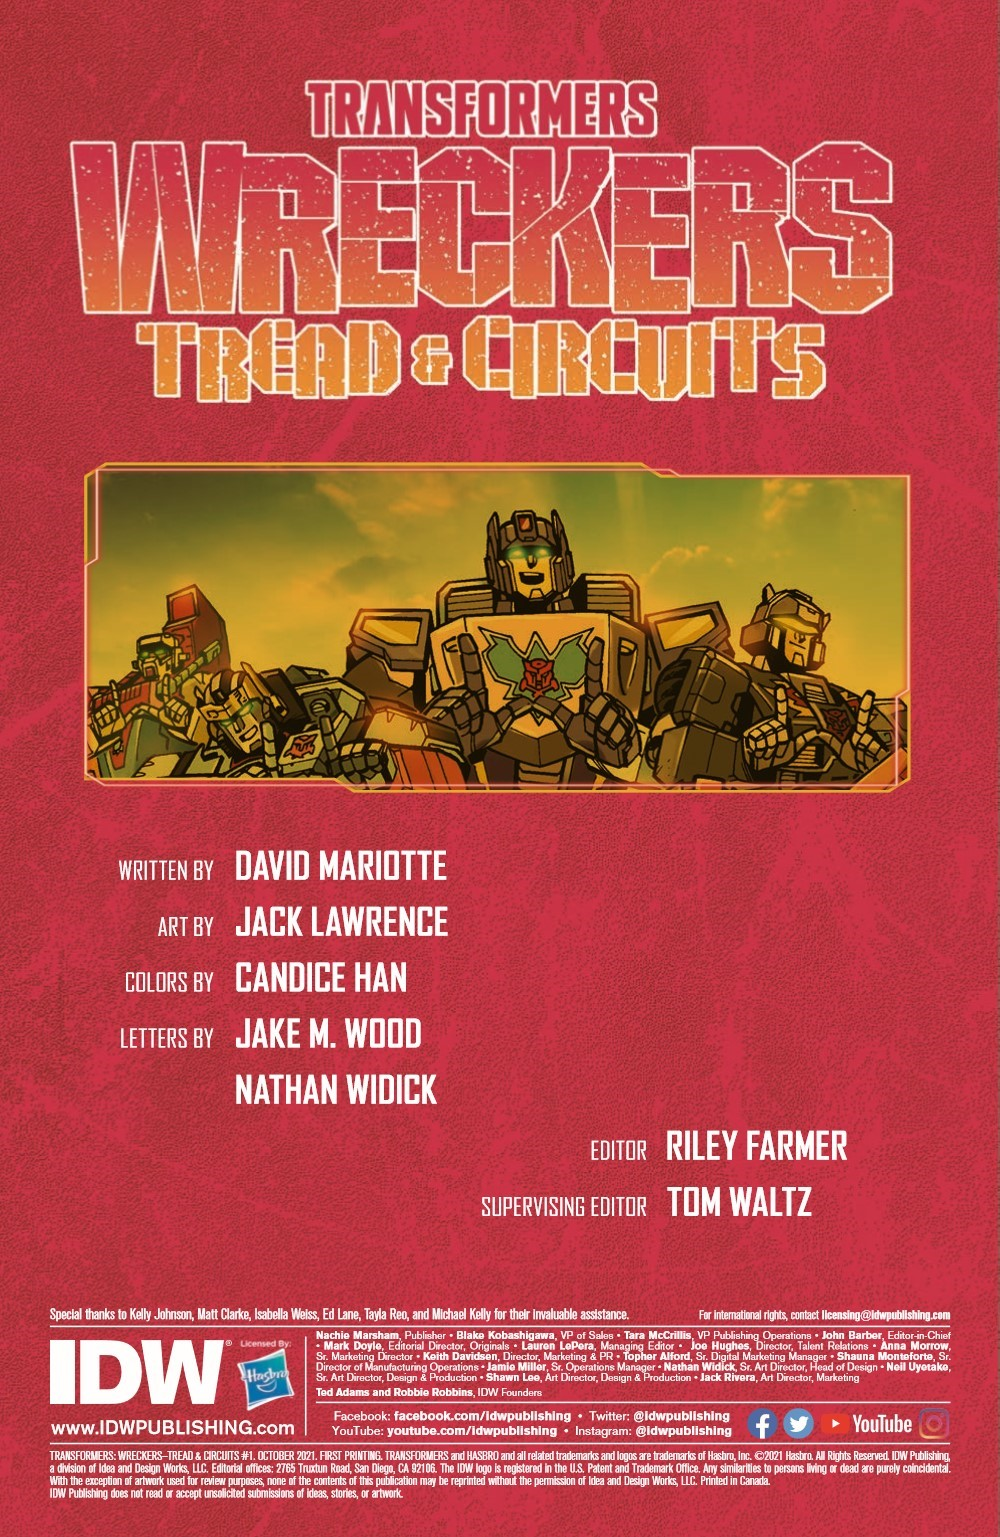 TFWreckers01-pr-2 ComicList Previews: TRANSFORMERS WRECKERS TREAD AND CIRCUITS #1 (OF 4)